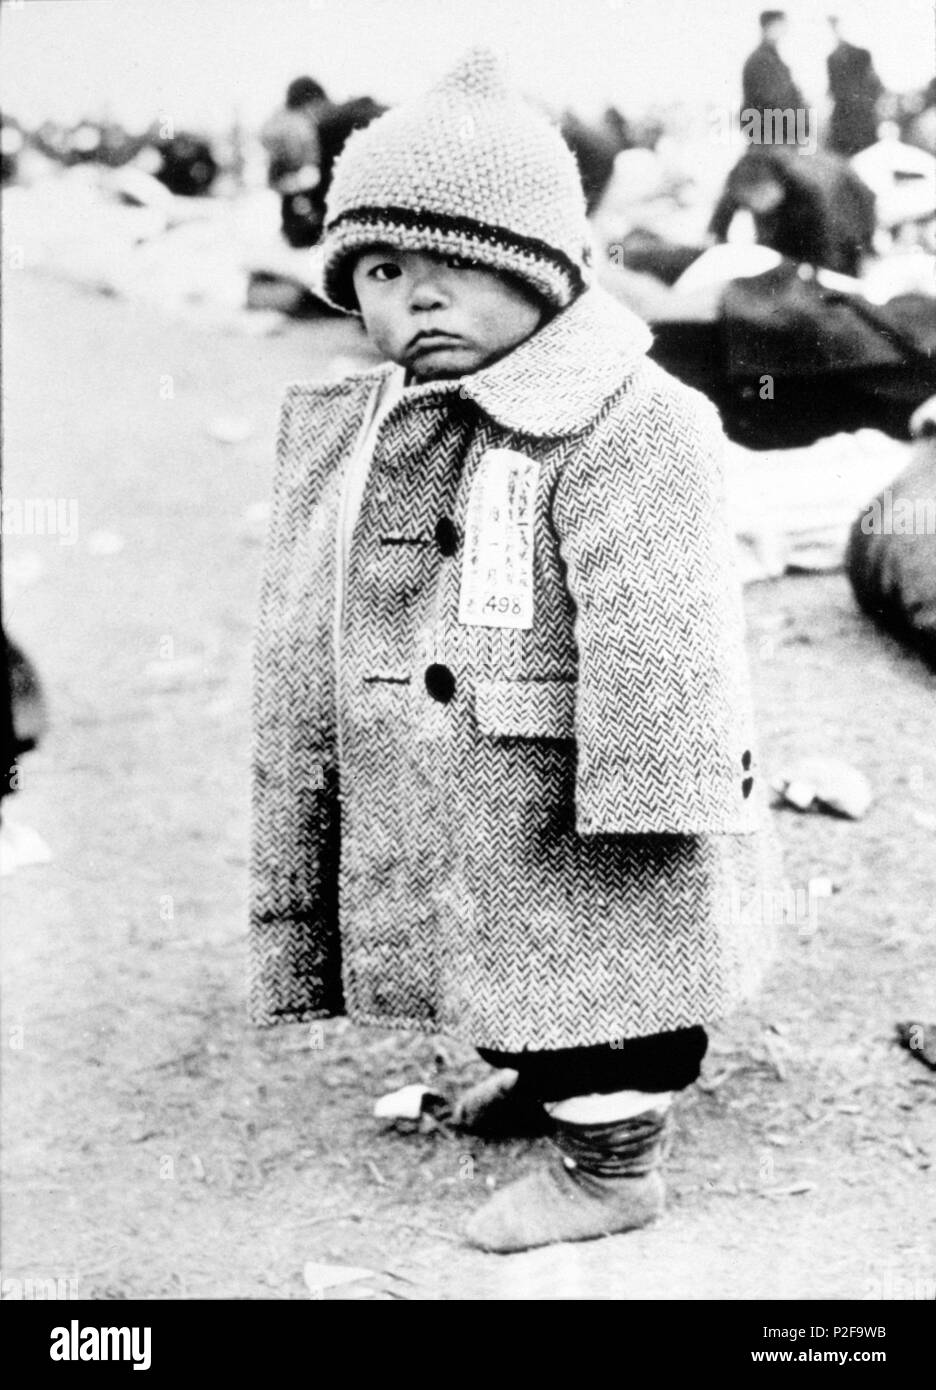 This youngster, clad in an oversize coat and bearing a label to prevent him becoming lost. His one of more than 4 milion Japanese transported by the US Navy from far Eastern ports and pacific islands. 1945. - Stock Image